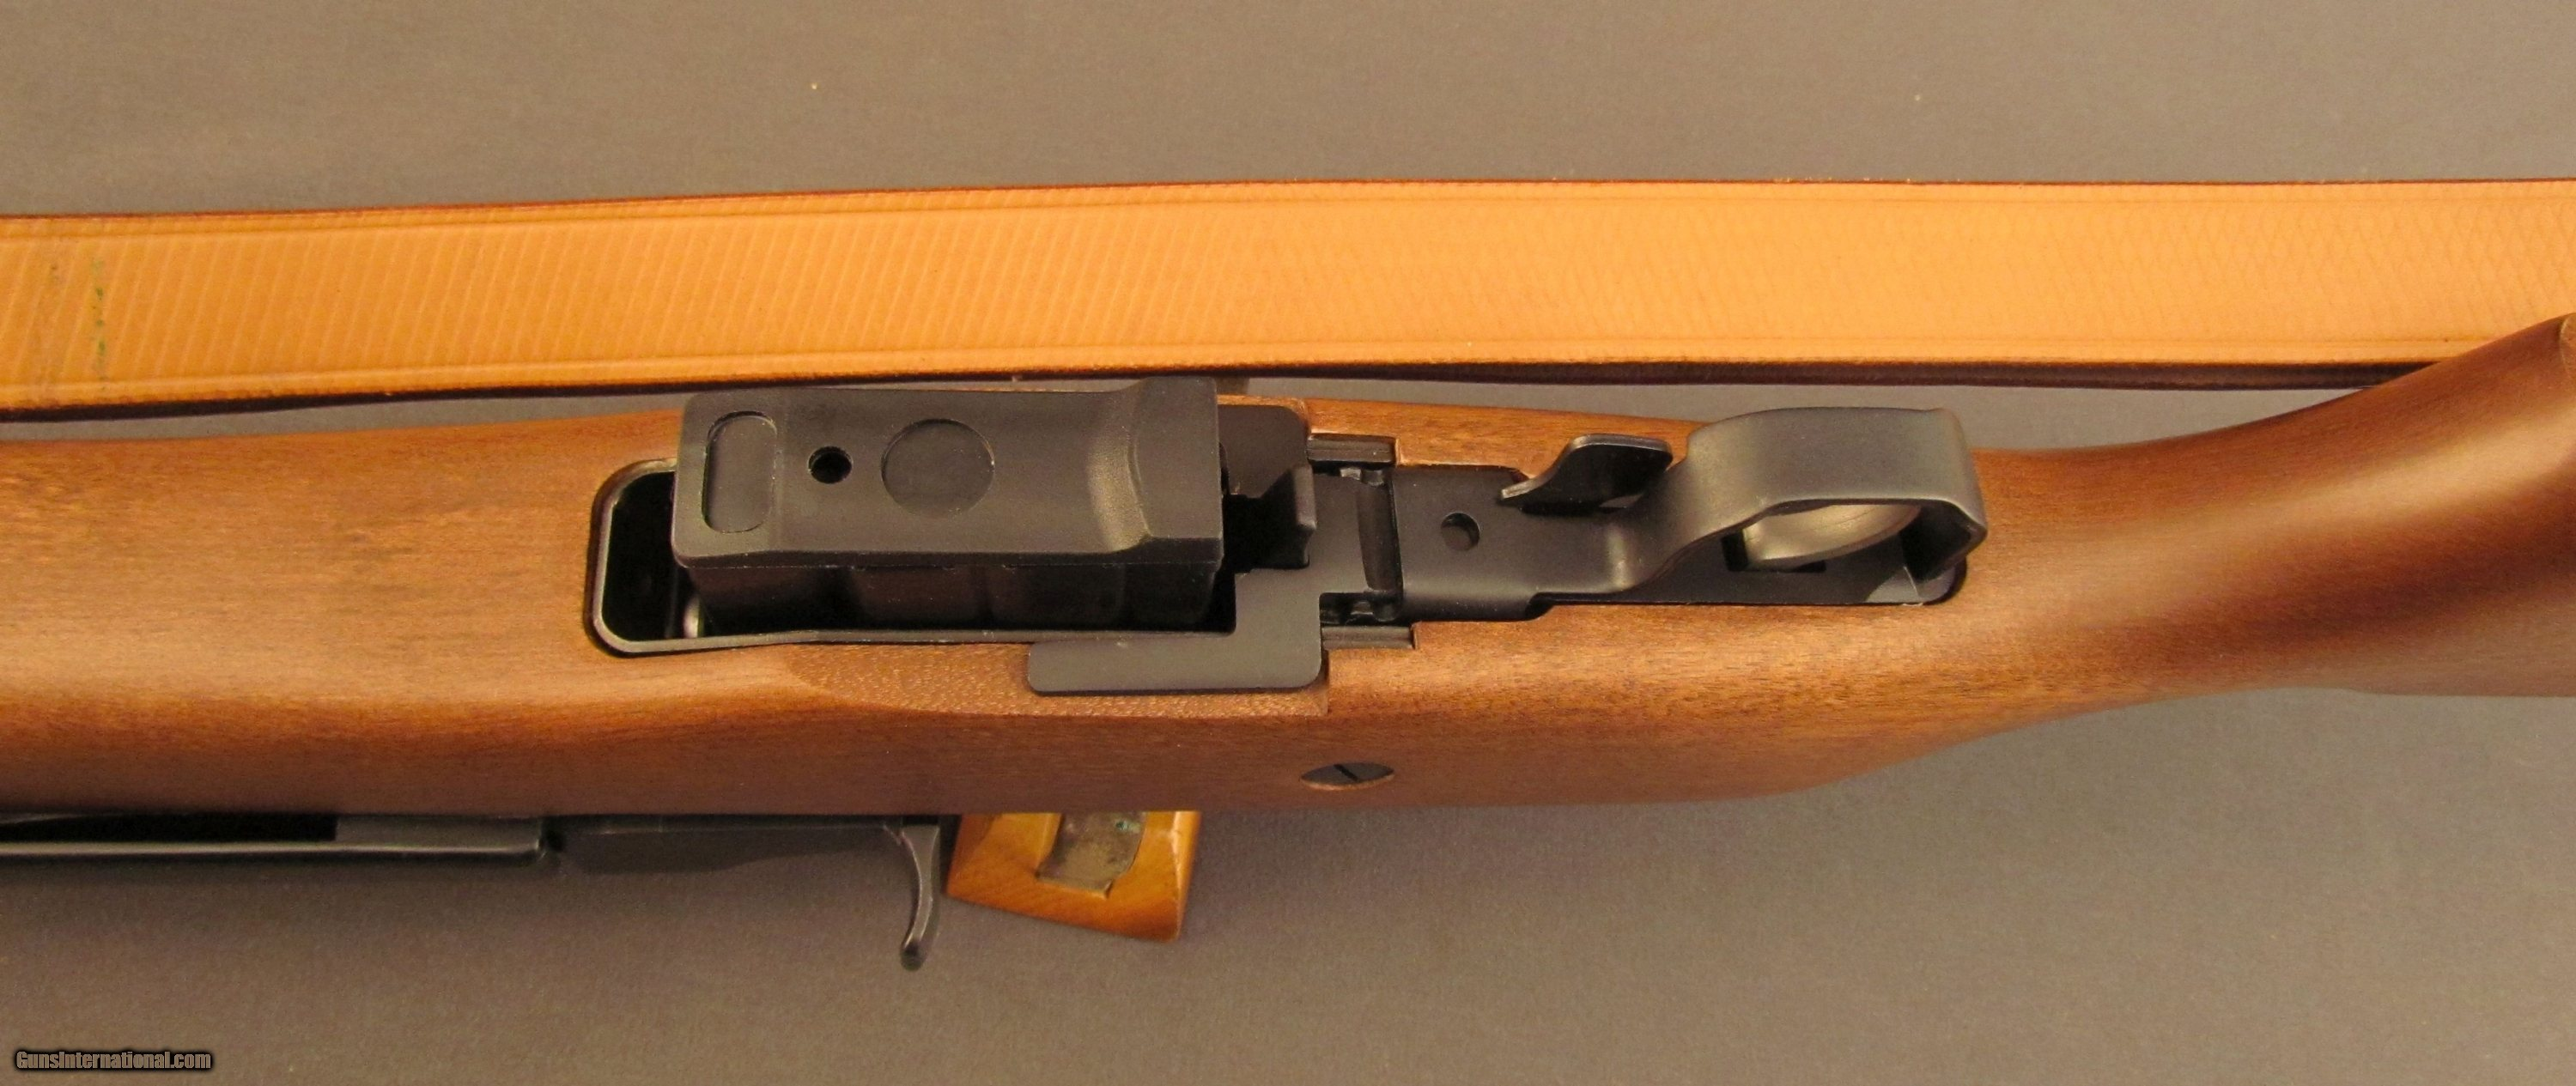 Ruger Mini 30 bottom